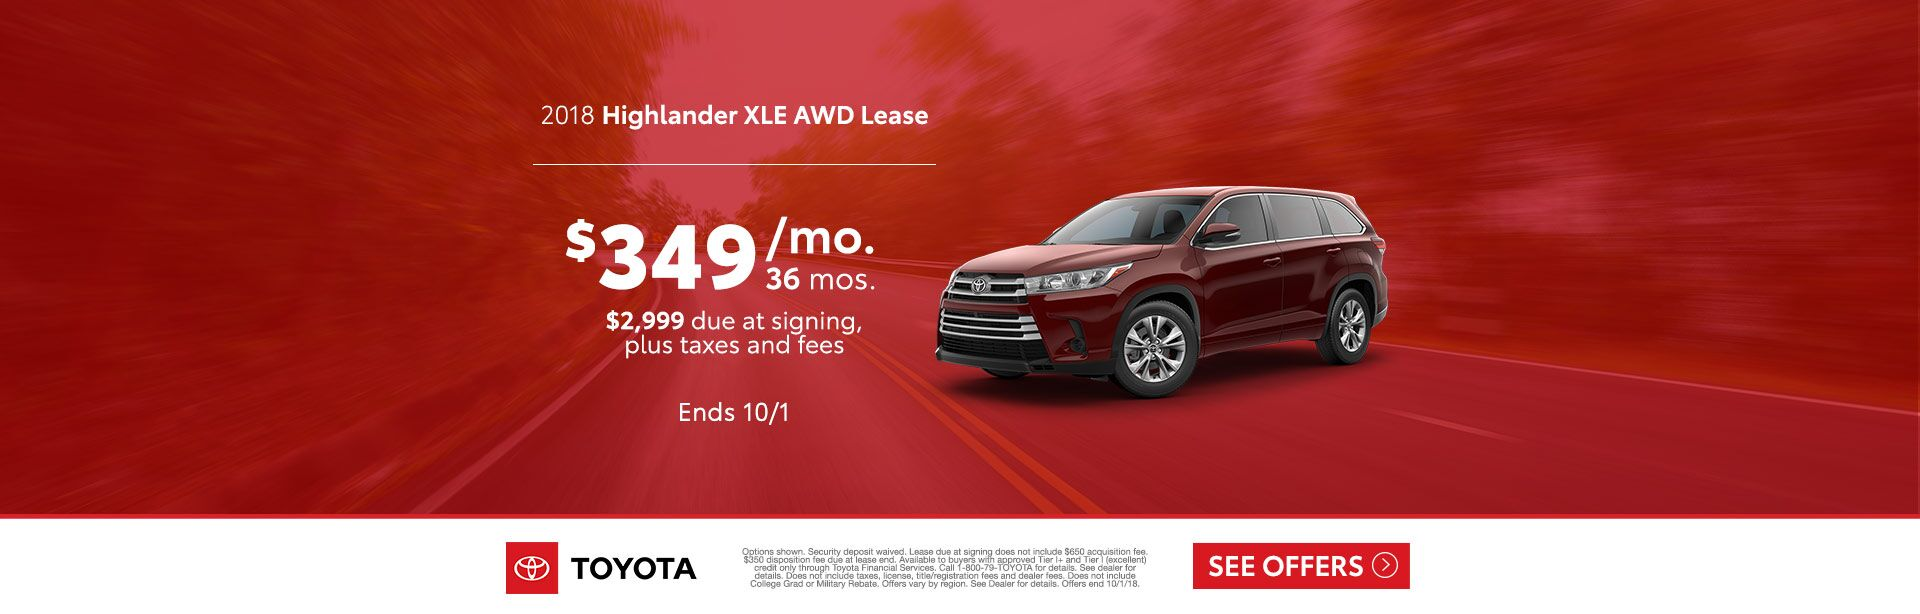 Highlander Lease Sept 2018